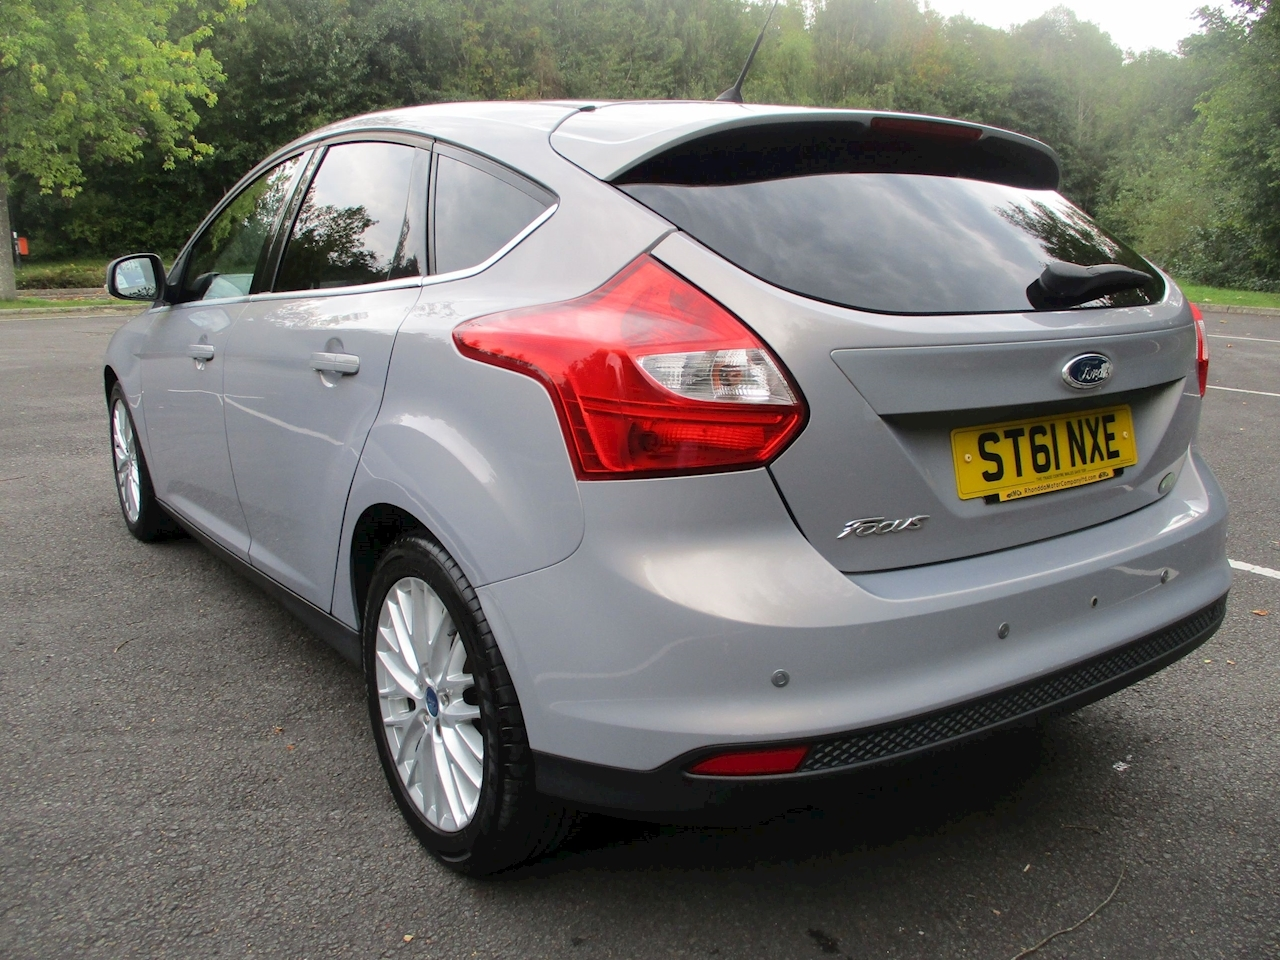 Focus Zetec Hatchback 1.6 Manual Petrol